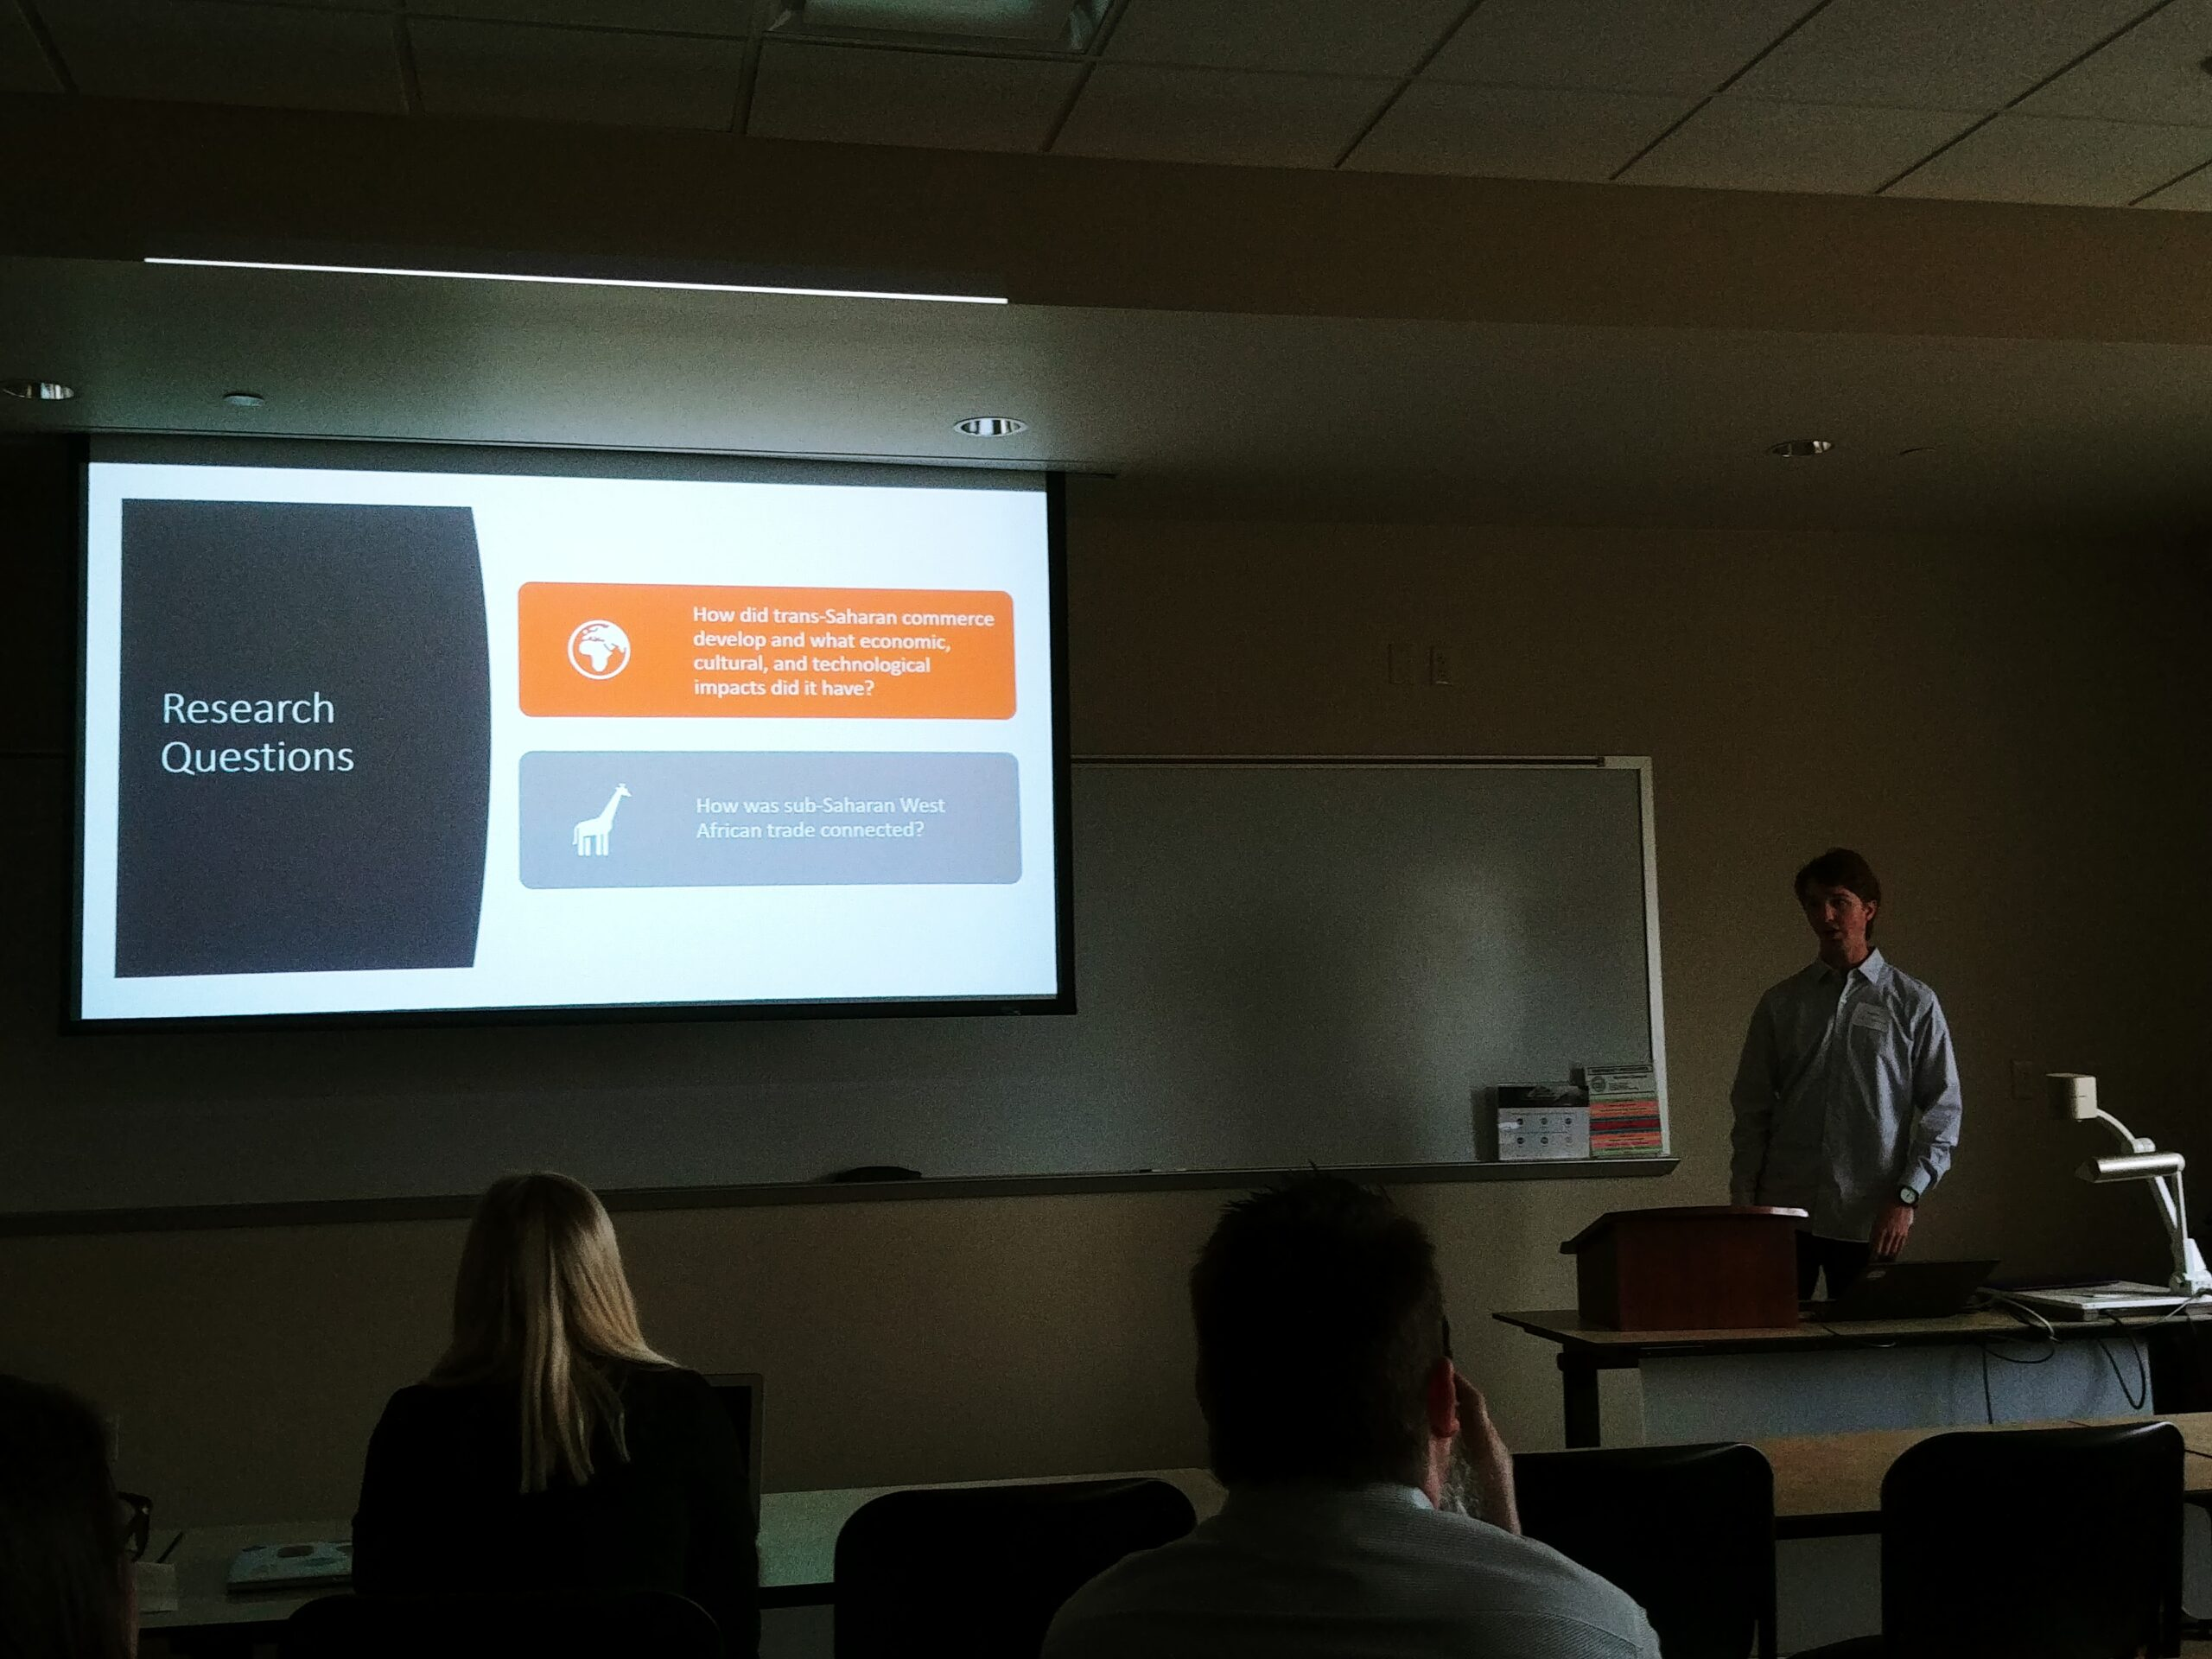 Ian Miller at Undergraduate Research Day, Spring 2019, presenting research.